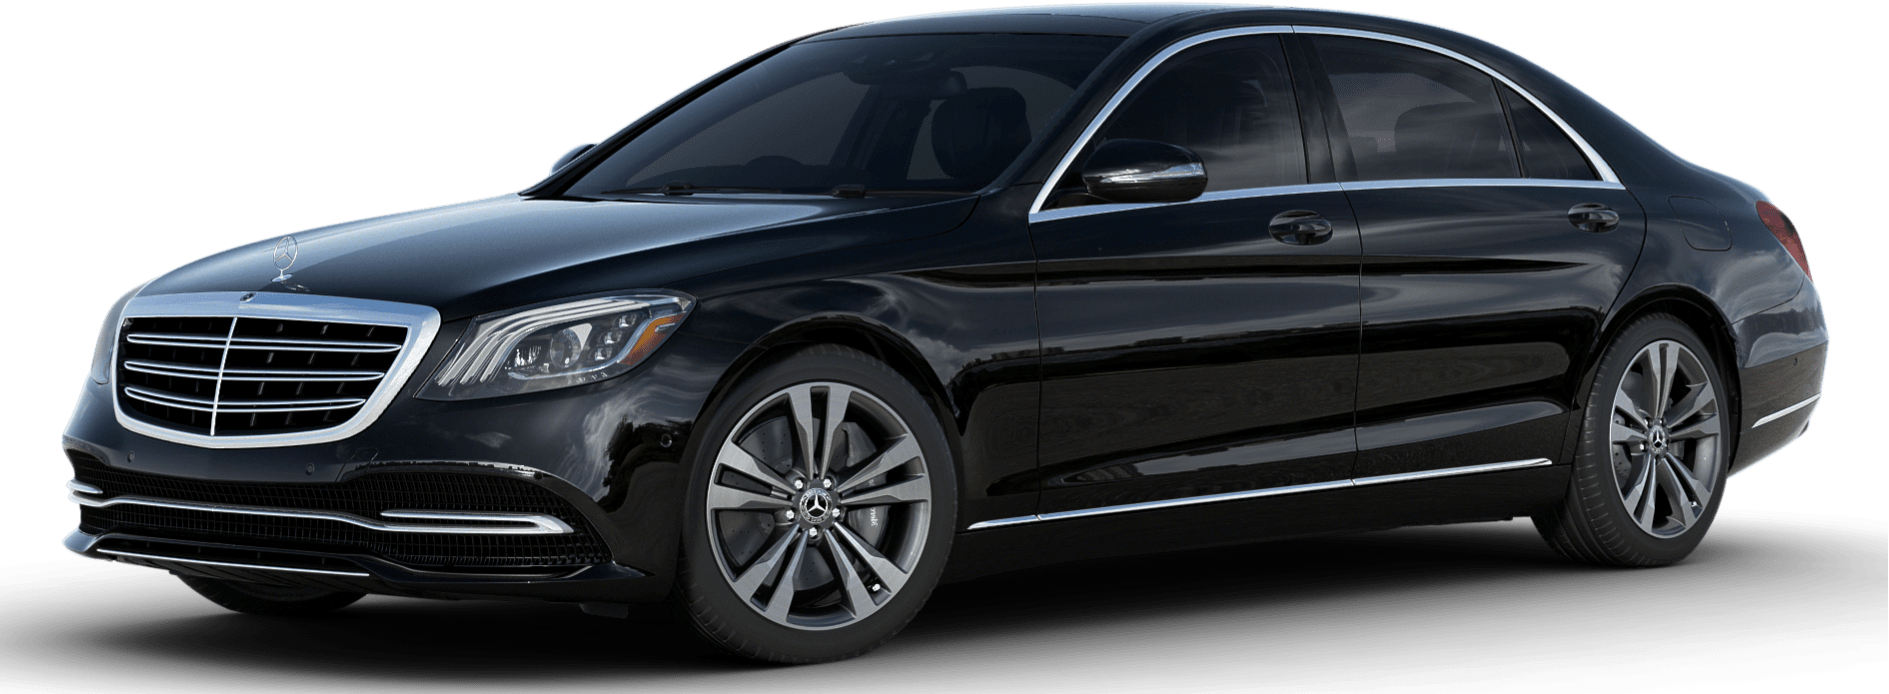 s-class chauffeur in london chelsea kensington